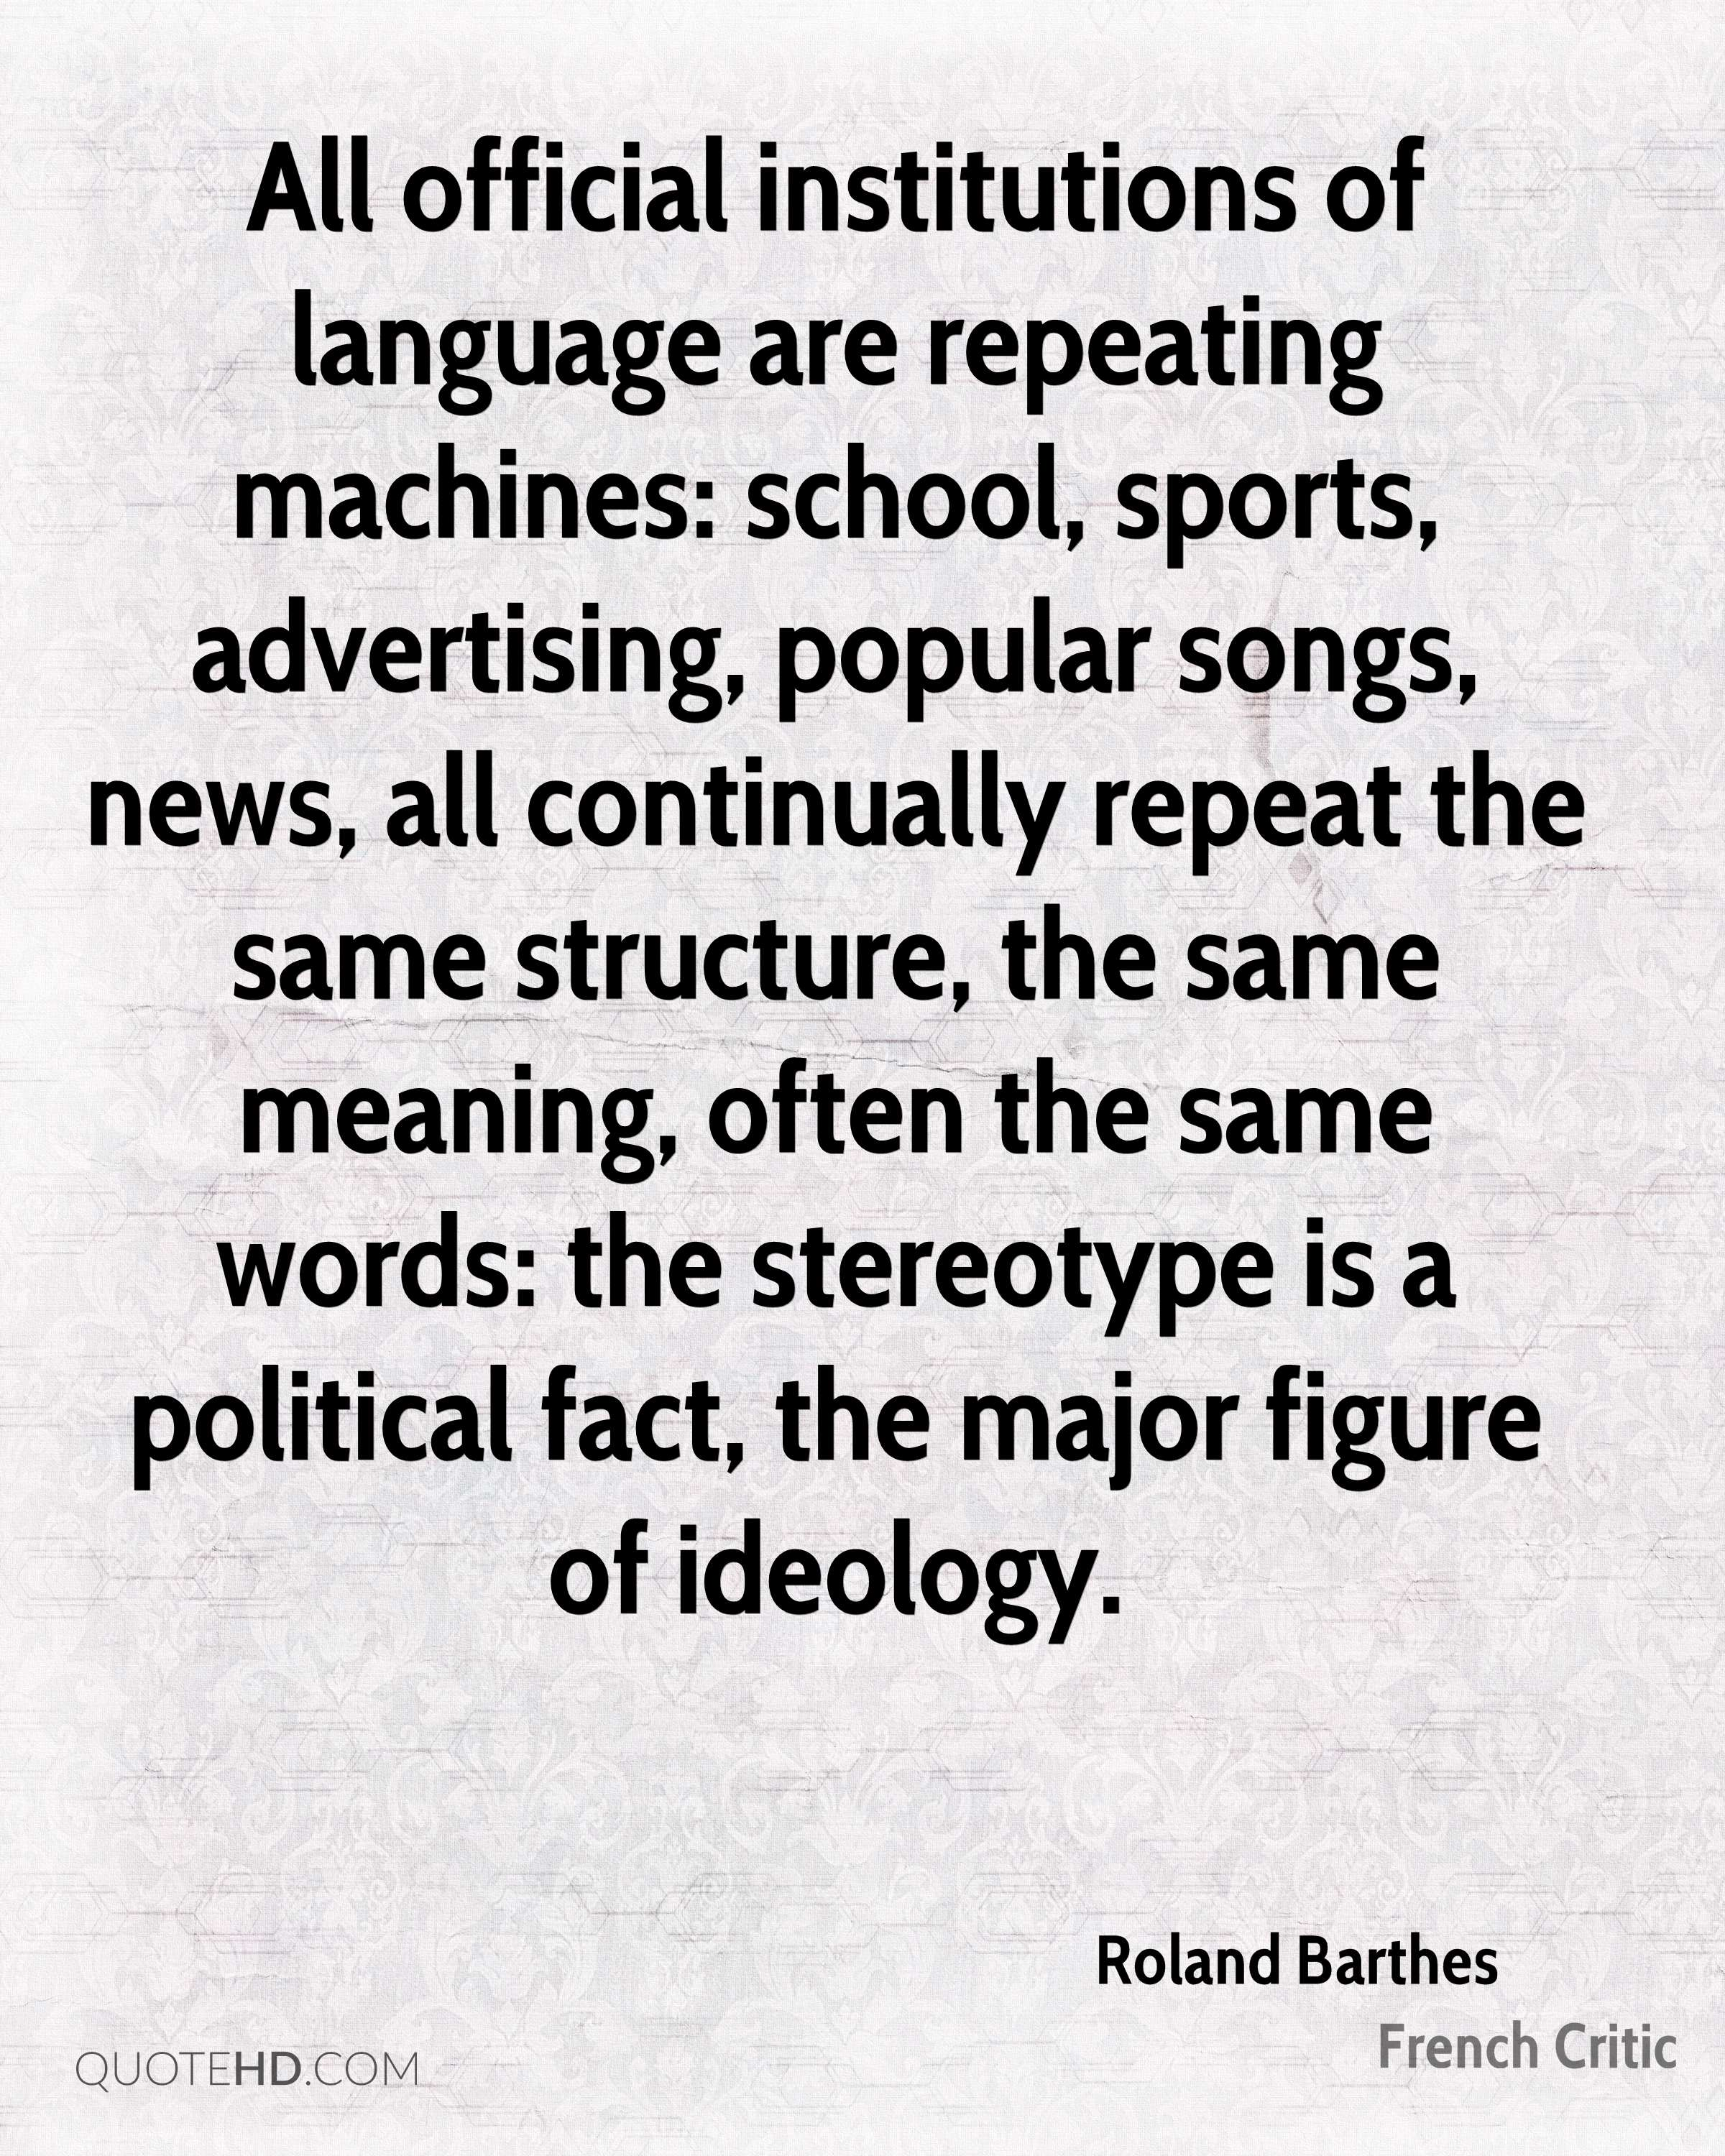 All official institutions of language are repeating machines: school, sports, advertising, popular songs, news, all continually repeat the same structure, the same meaning, often the same words: the stereotype is a political fact, the major figure of ideology.